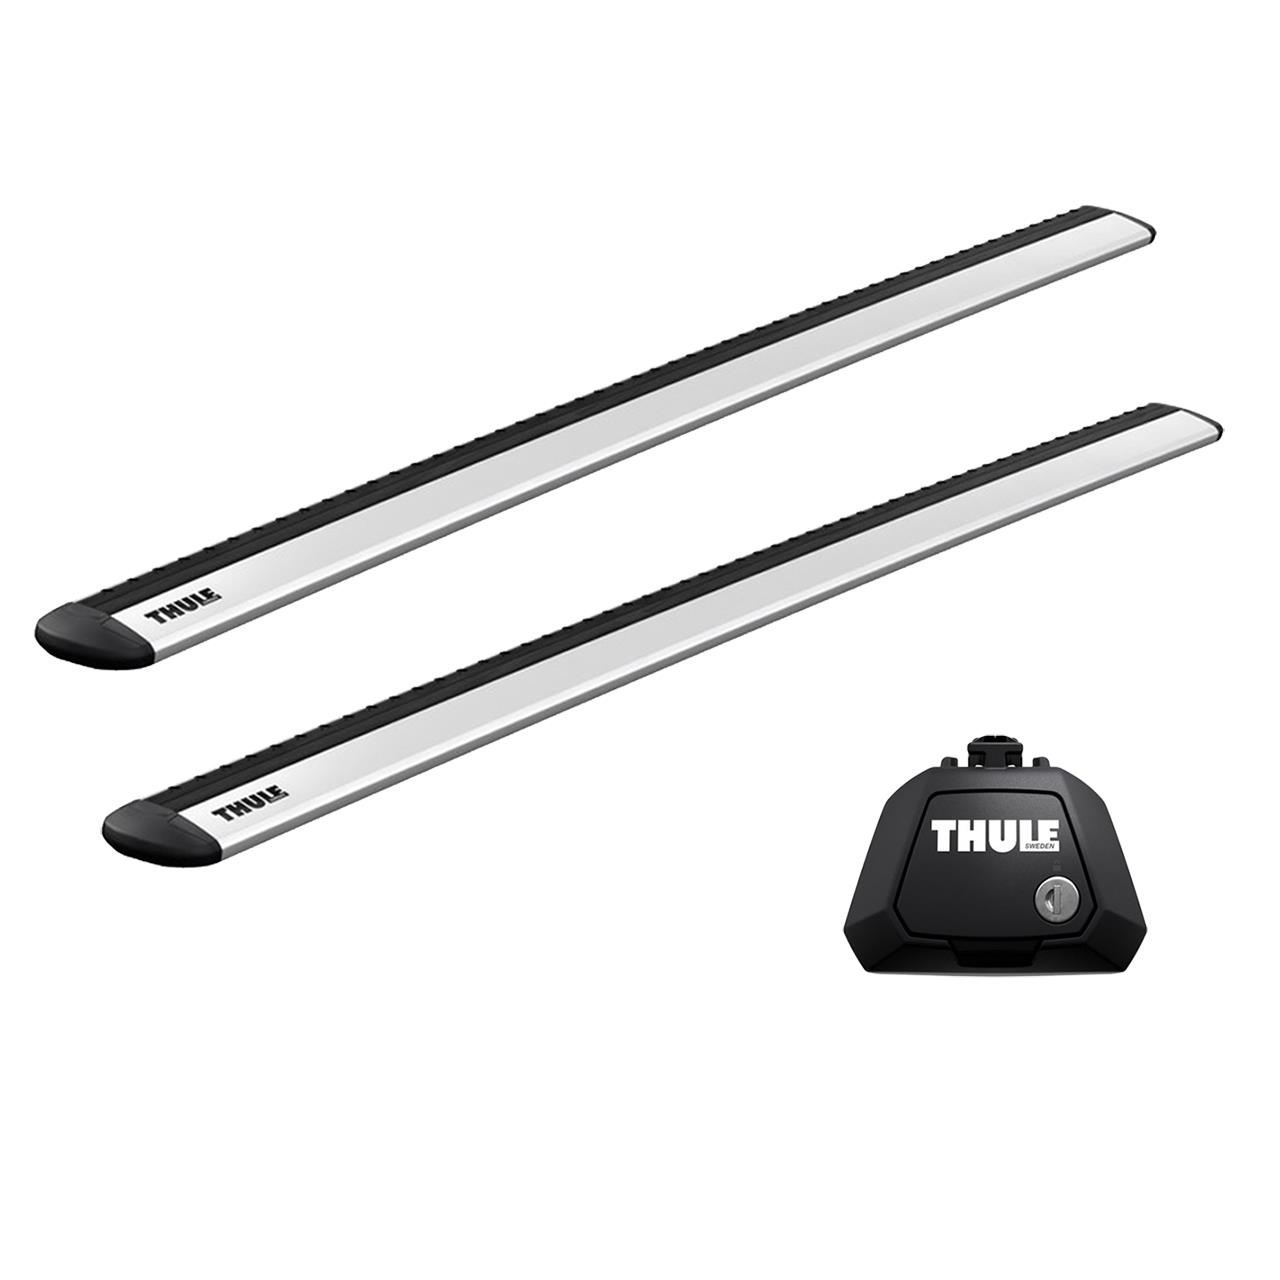 Напречни греди Thule Evo Raised Rail WingBar Evo 135cm за CHEVROLET Blazer 3 врати SUV 95-12 (S